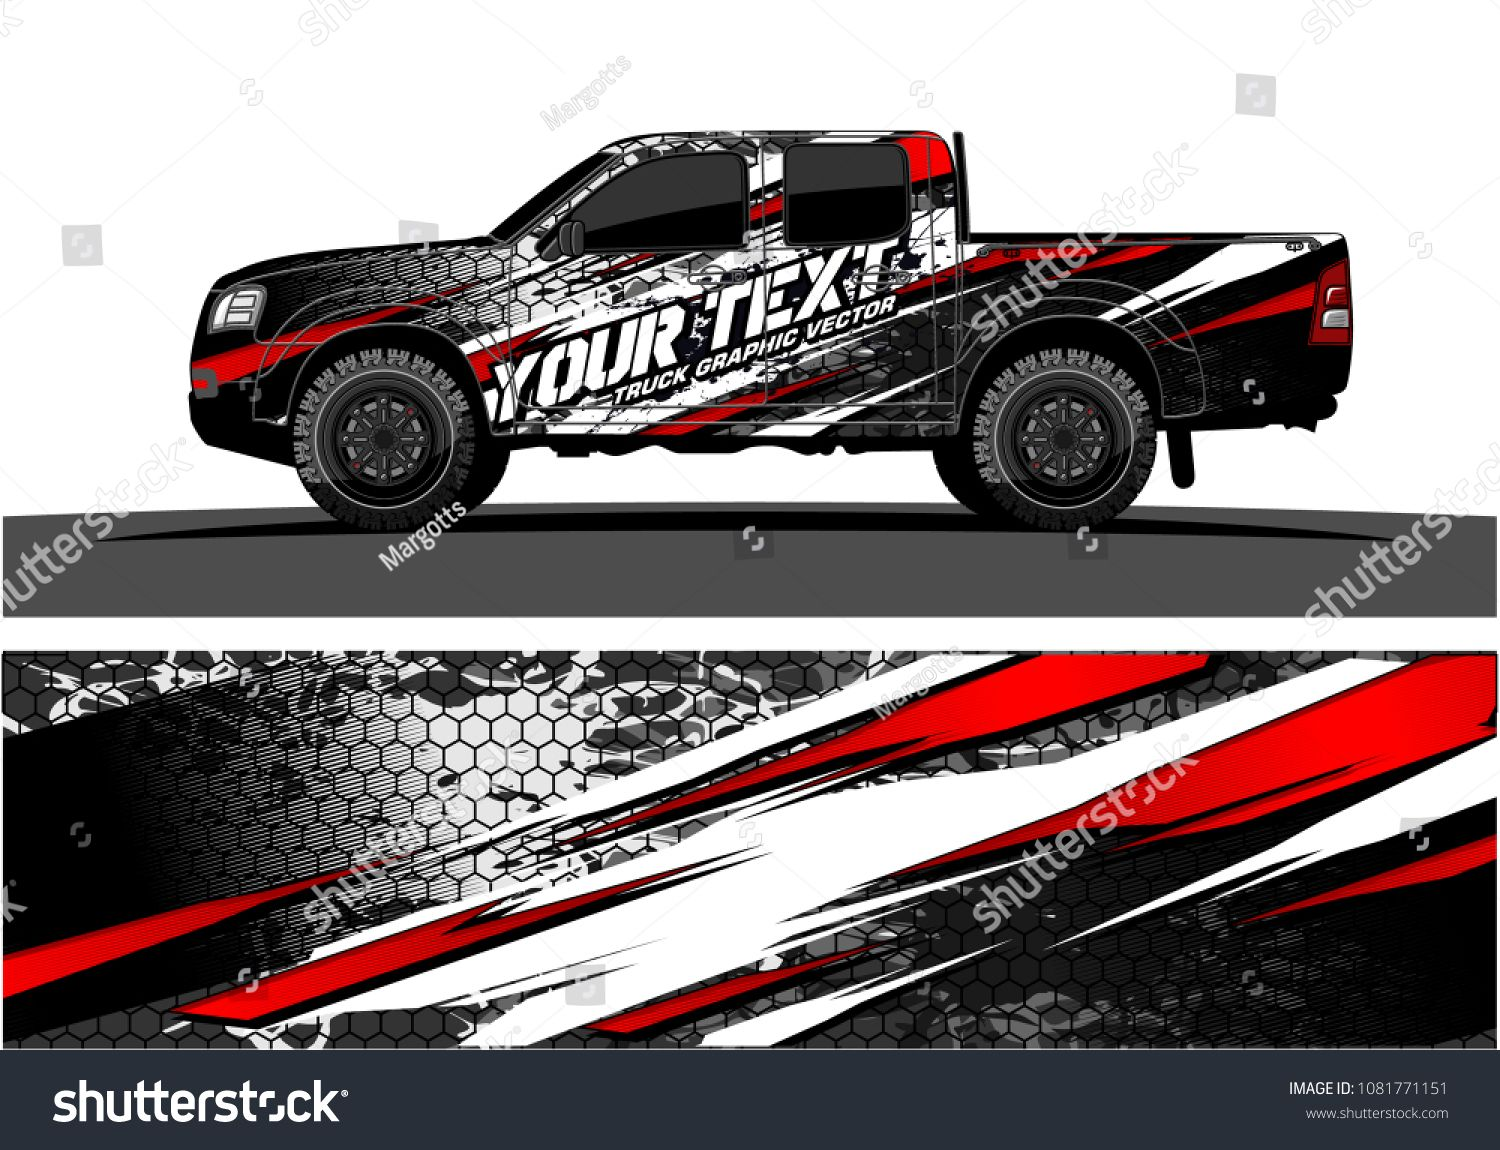 ae87486ec6 truck graphic vector. abstract grunge background design for vehicle vinyl  wrap and car branding